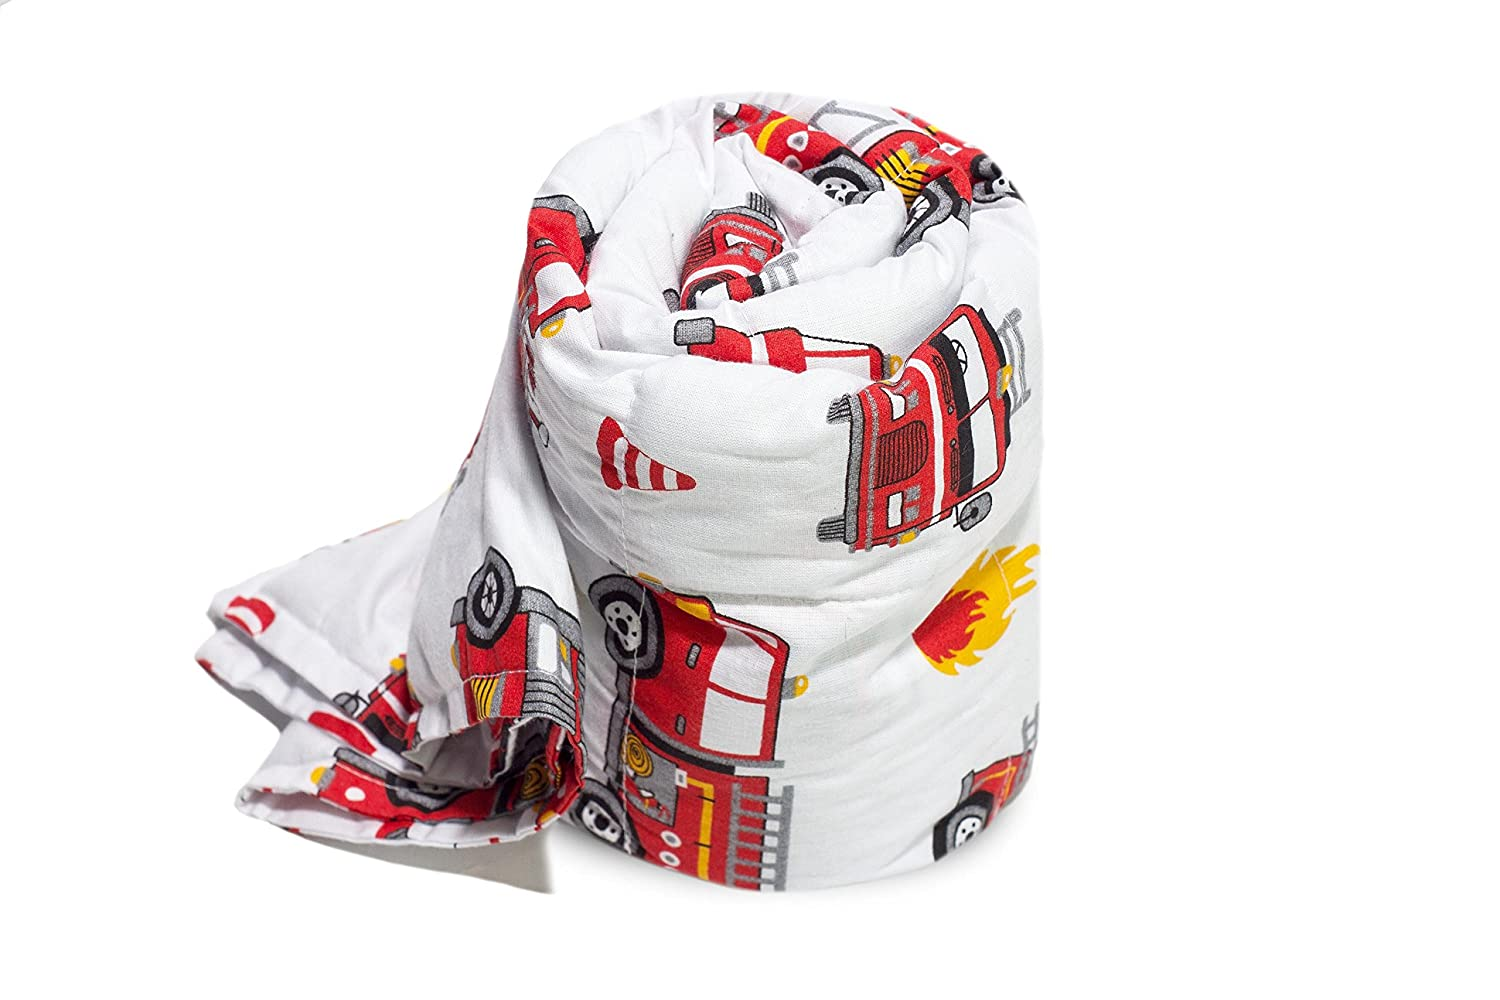 Senso-Rex. Gravity Blanket for the Youngest with a Fire Truck Theme. Used in ADHD and Autism Treatment. Size: 100x150 cm, Weight: 2kg. Fits Children between 3.7' and 4.7' (110-139cm) of Height.